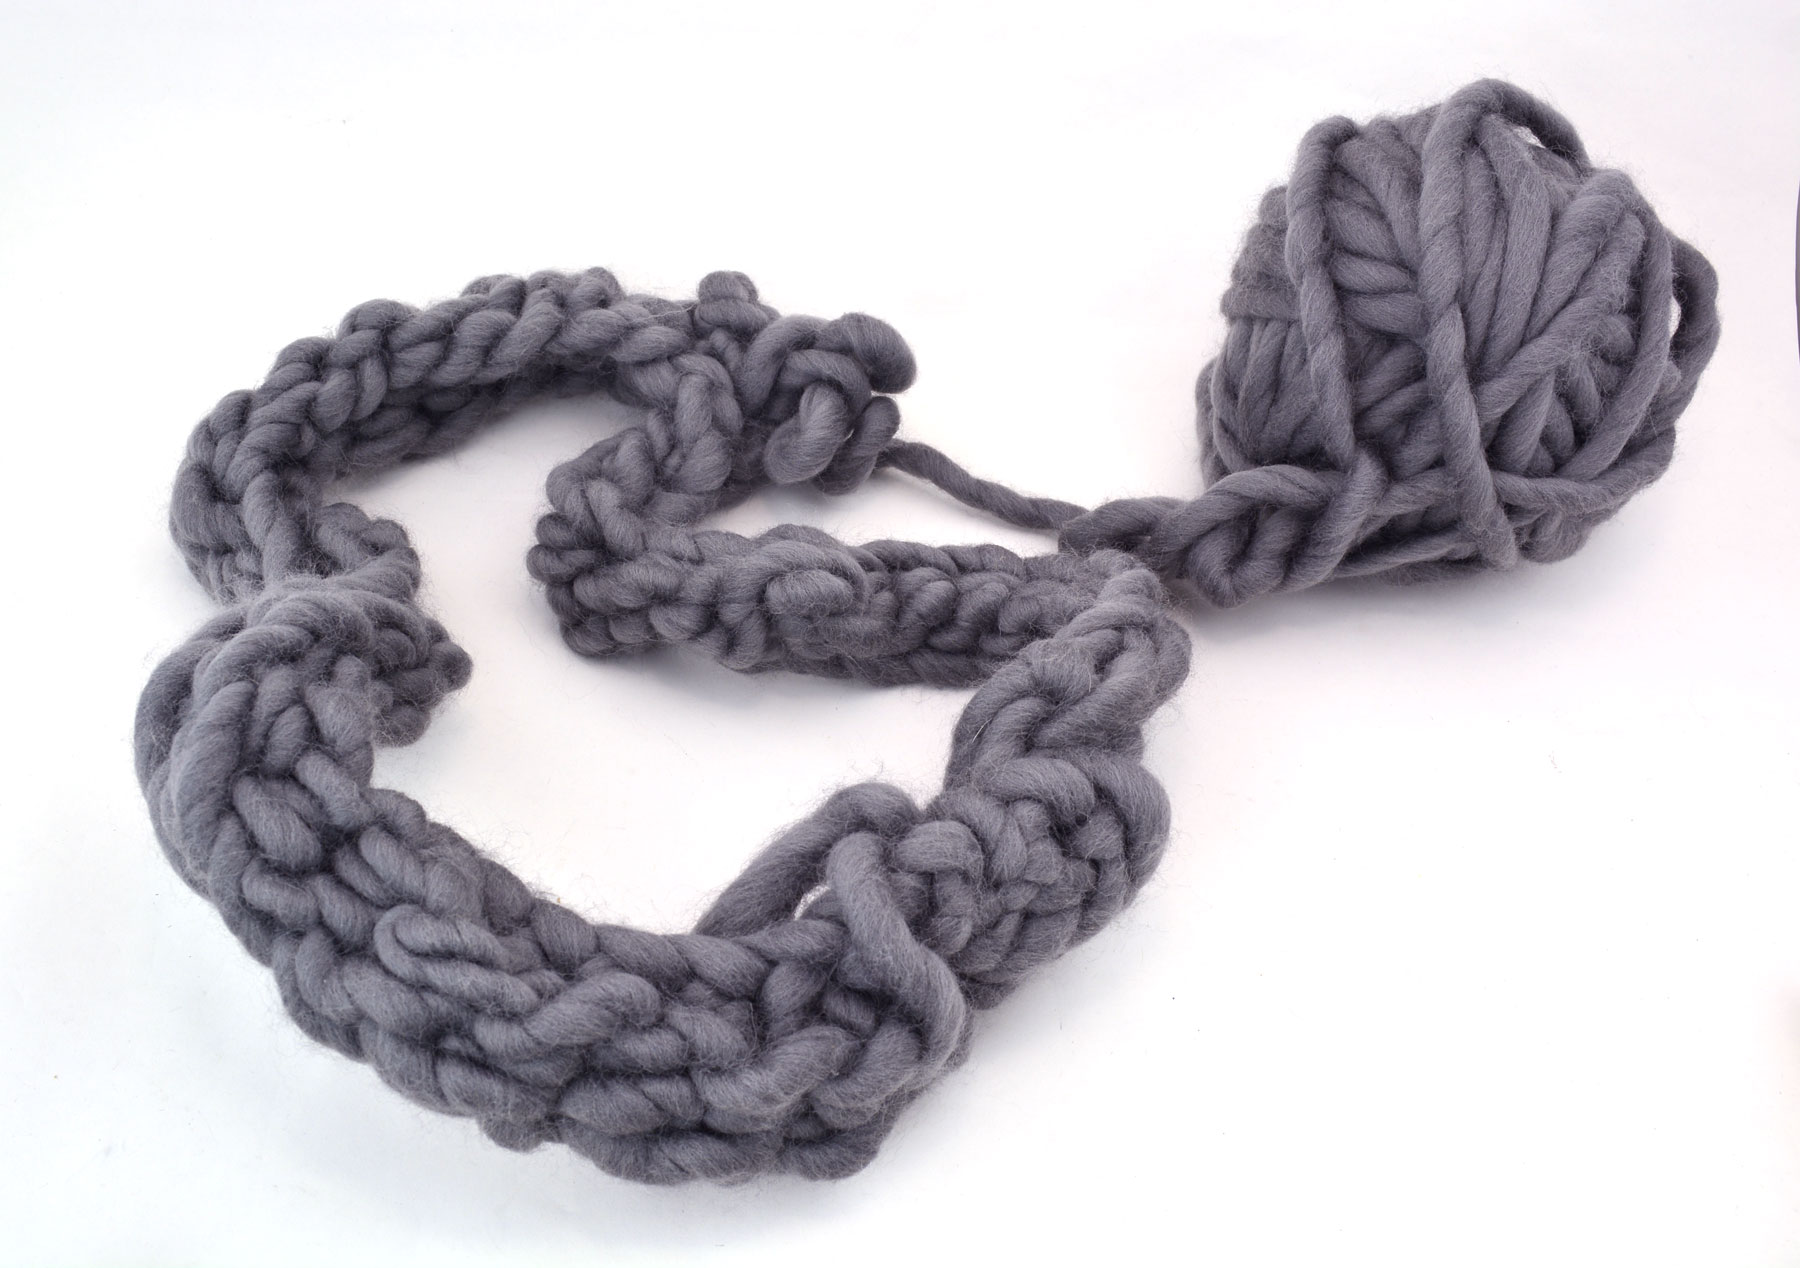 crochet fail - chunky grey yarn in a tight mess